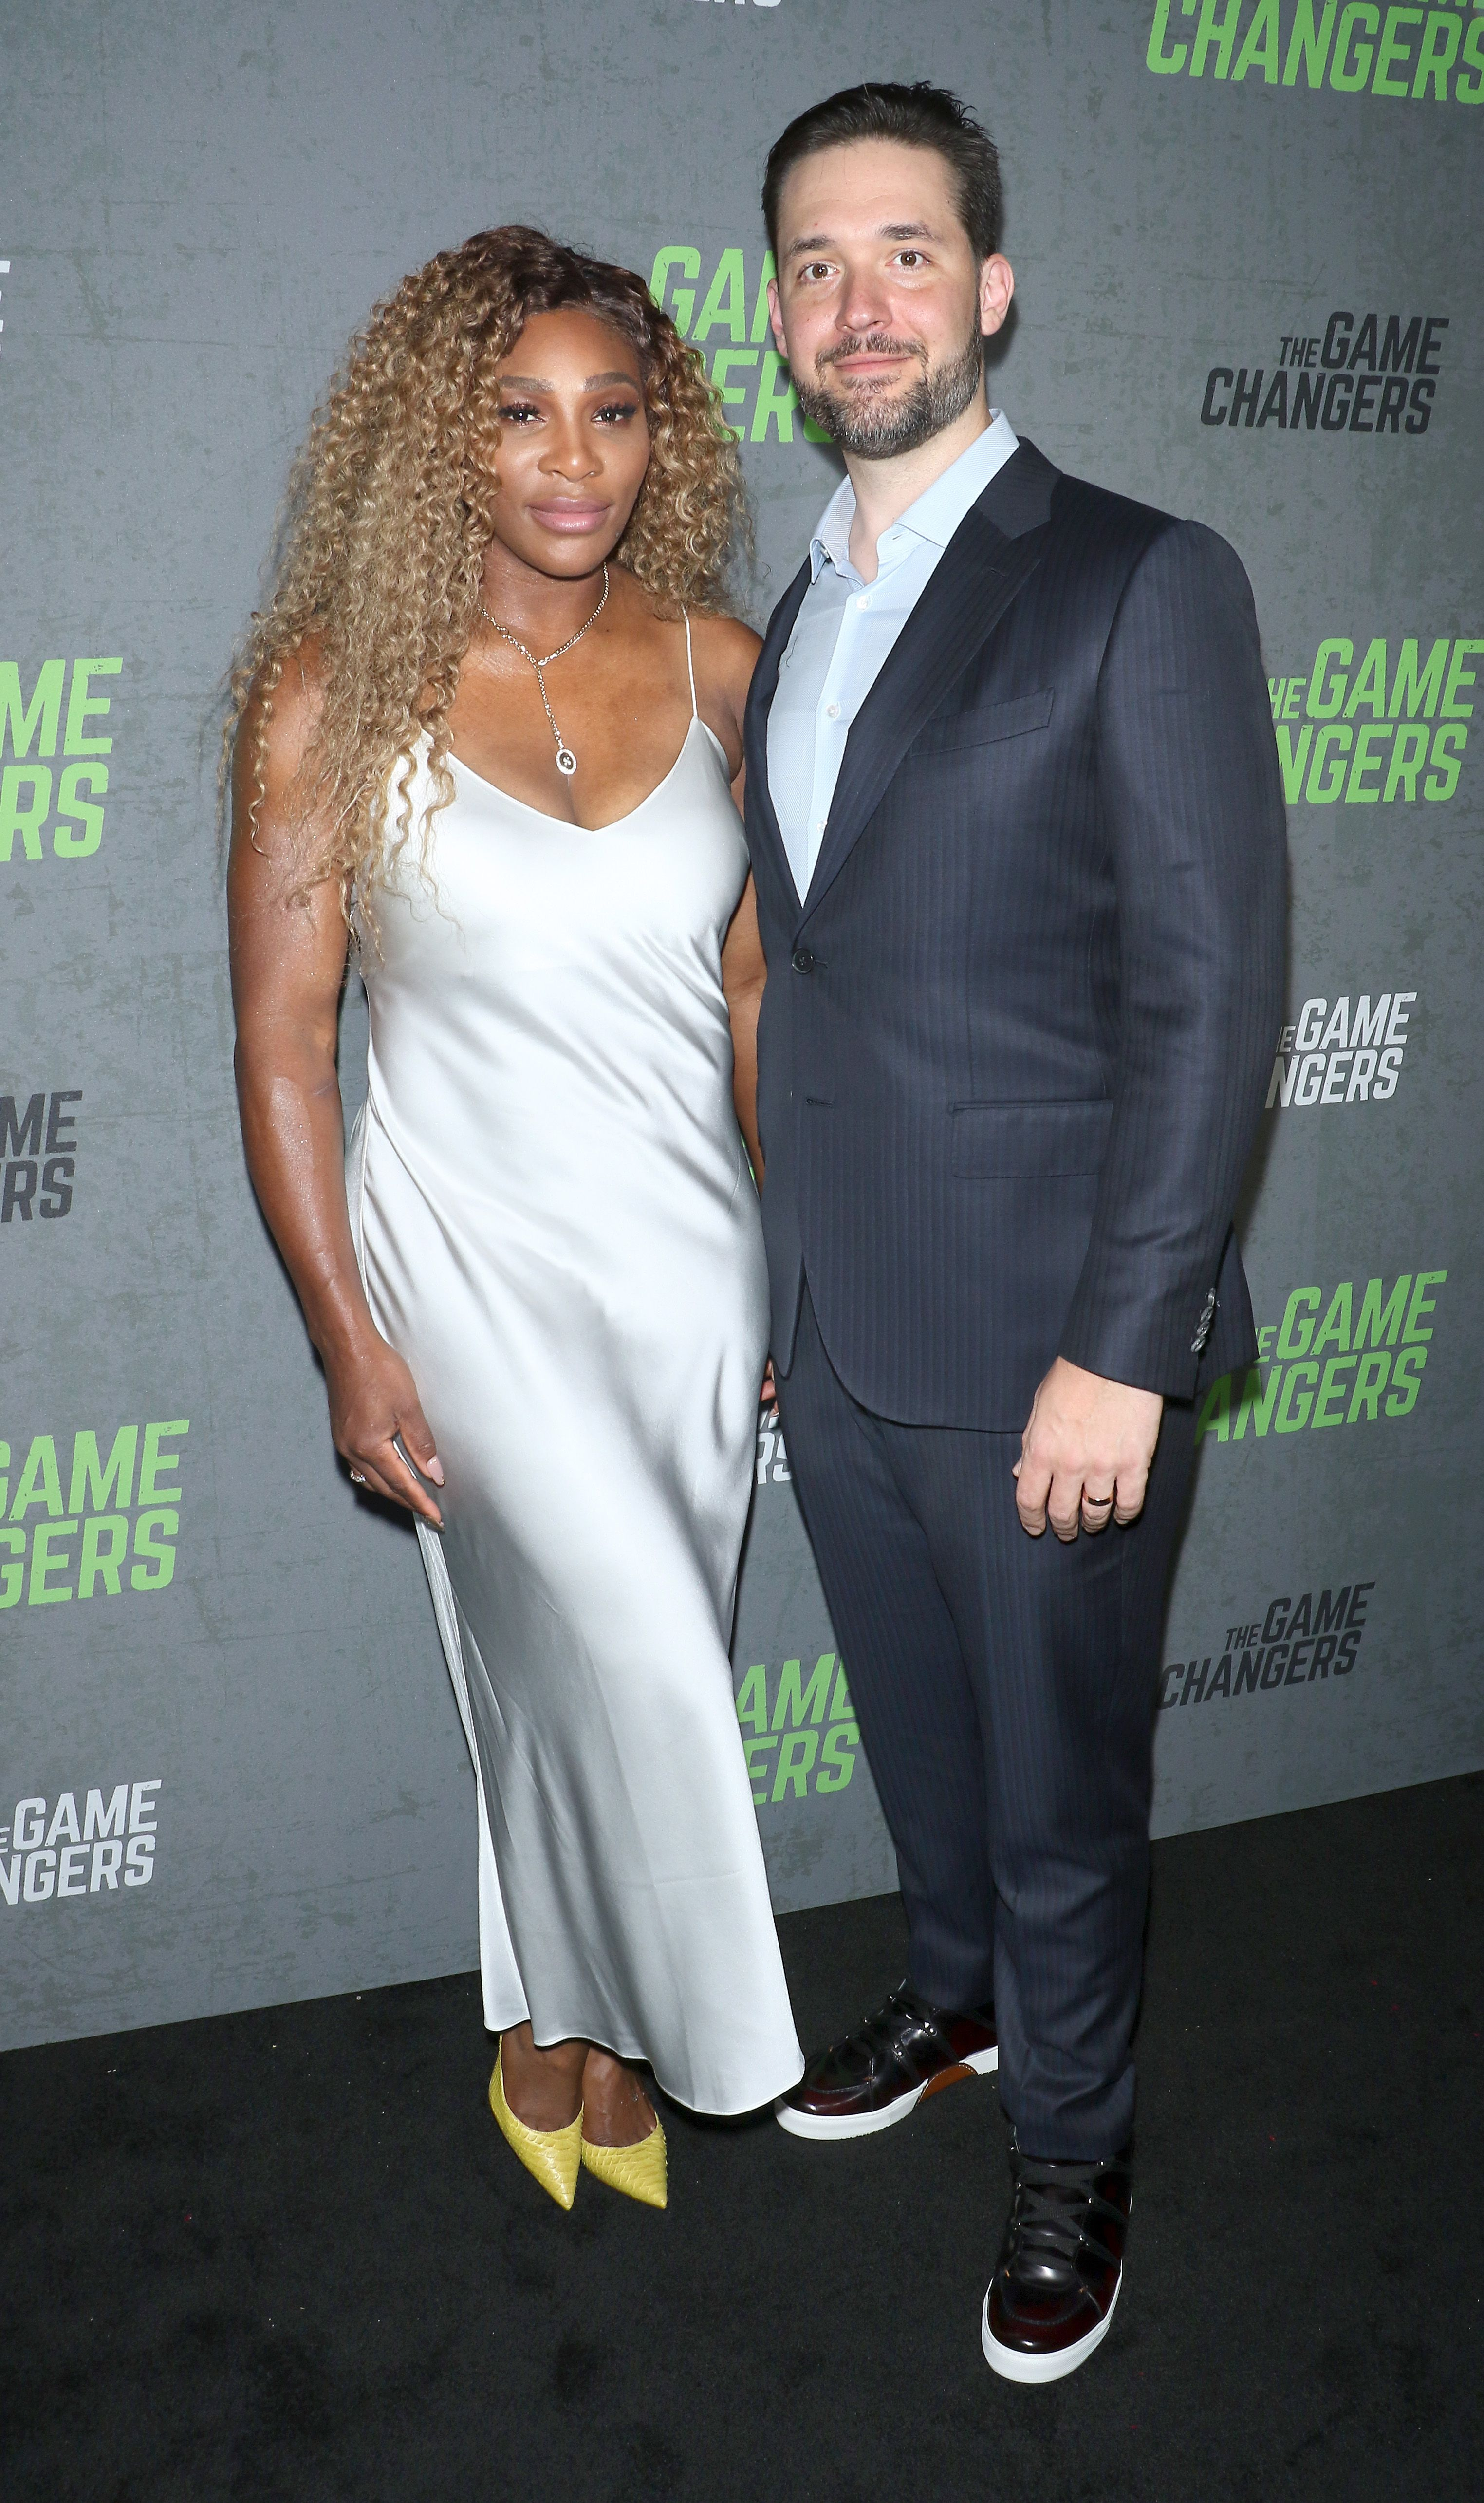 """Serena Williams and Alexis Ohanian atthe """"The Game Changers"""" New York premiere at Regal Battery Park 11 on September 09, 2019  Photo:Jim Spellman/Getty Images"""